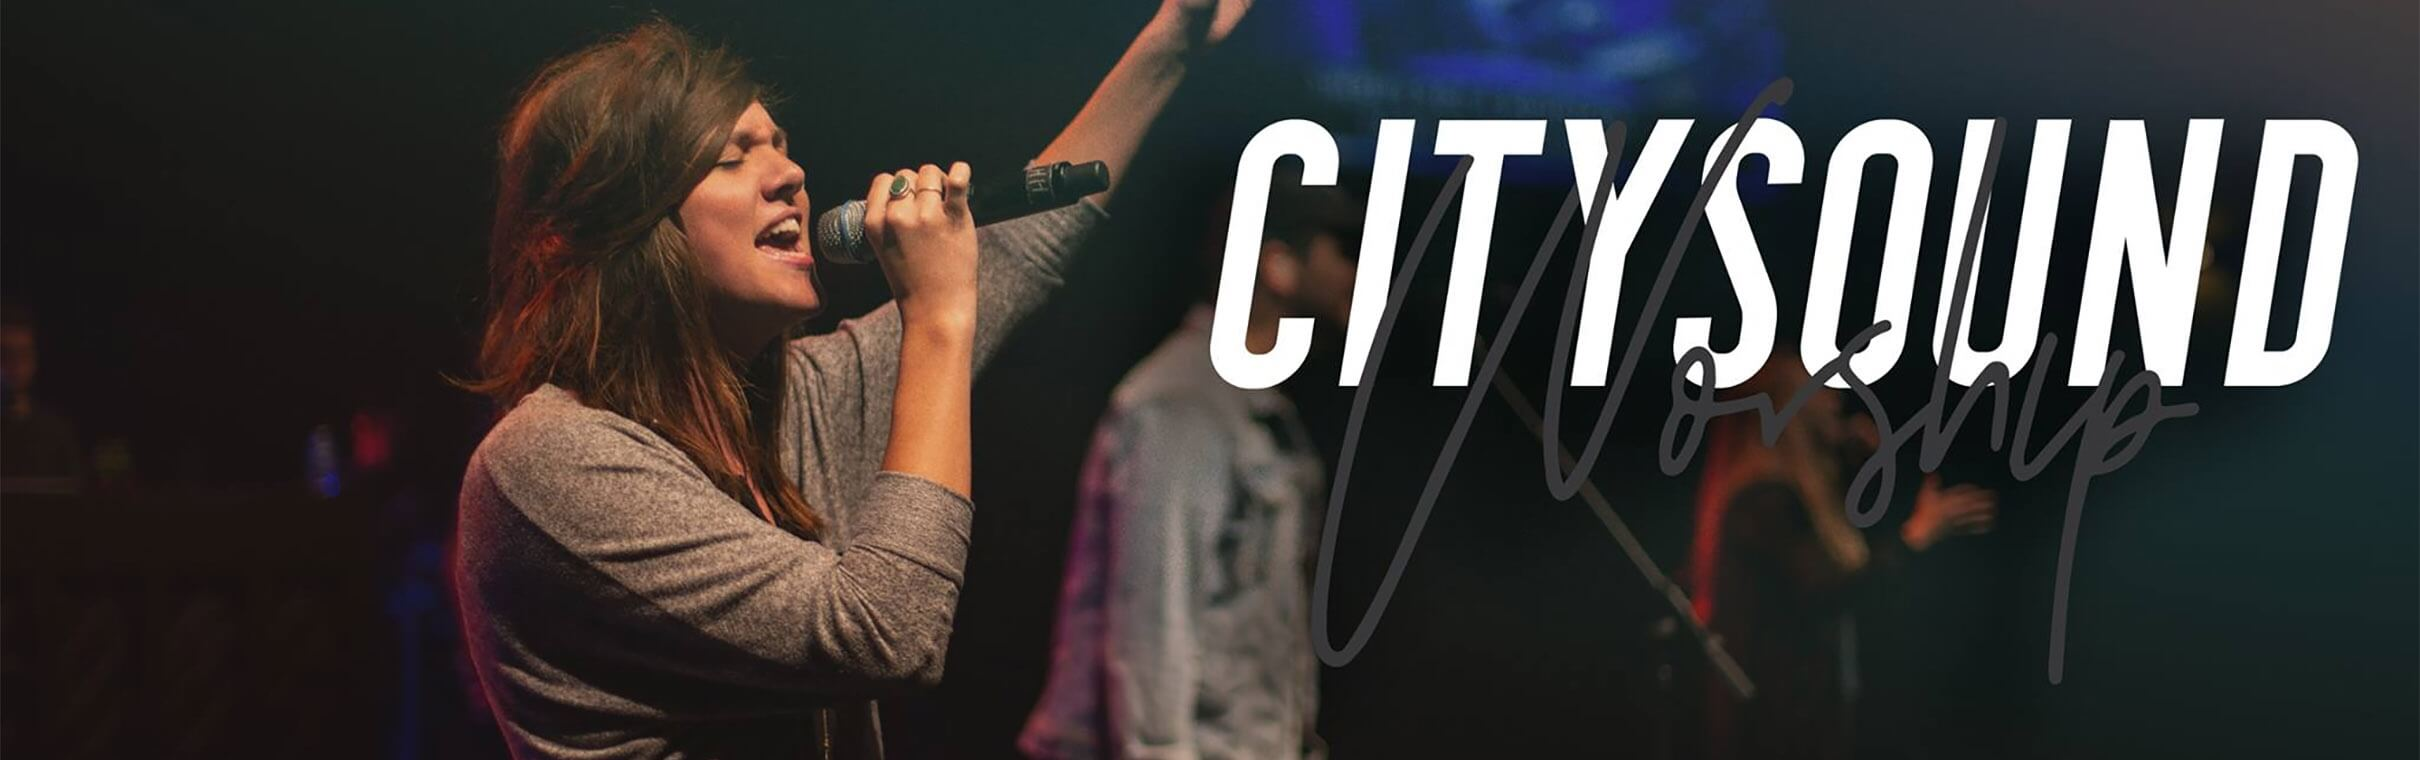 City Sound Worship